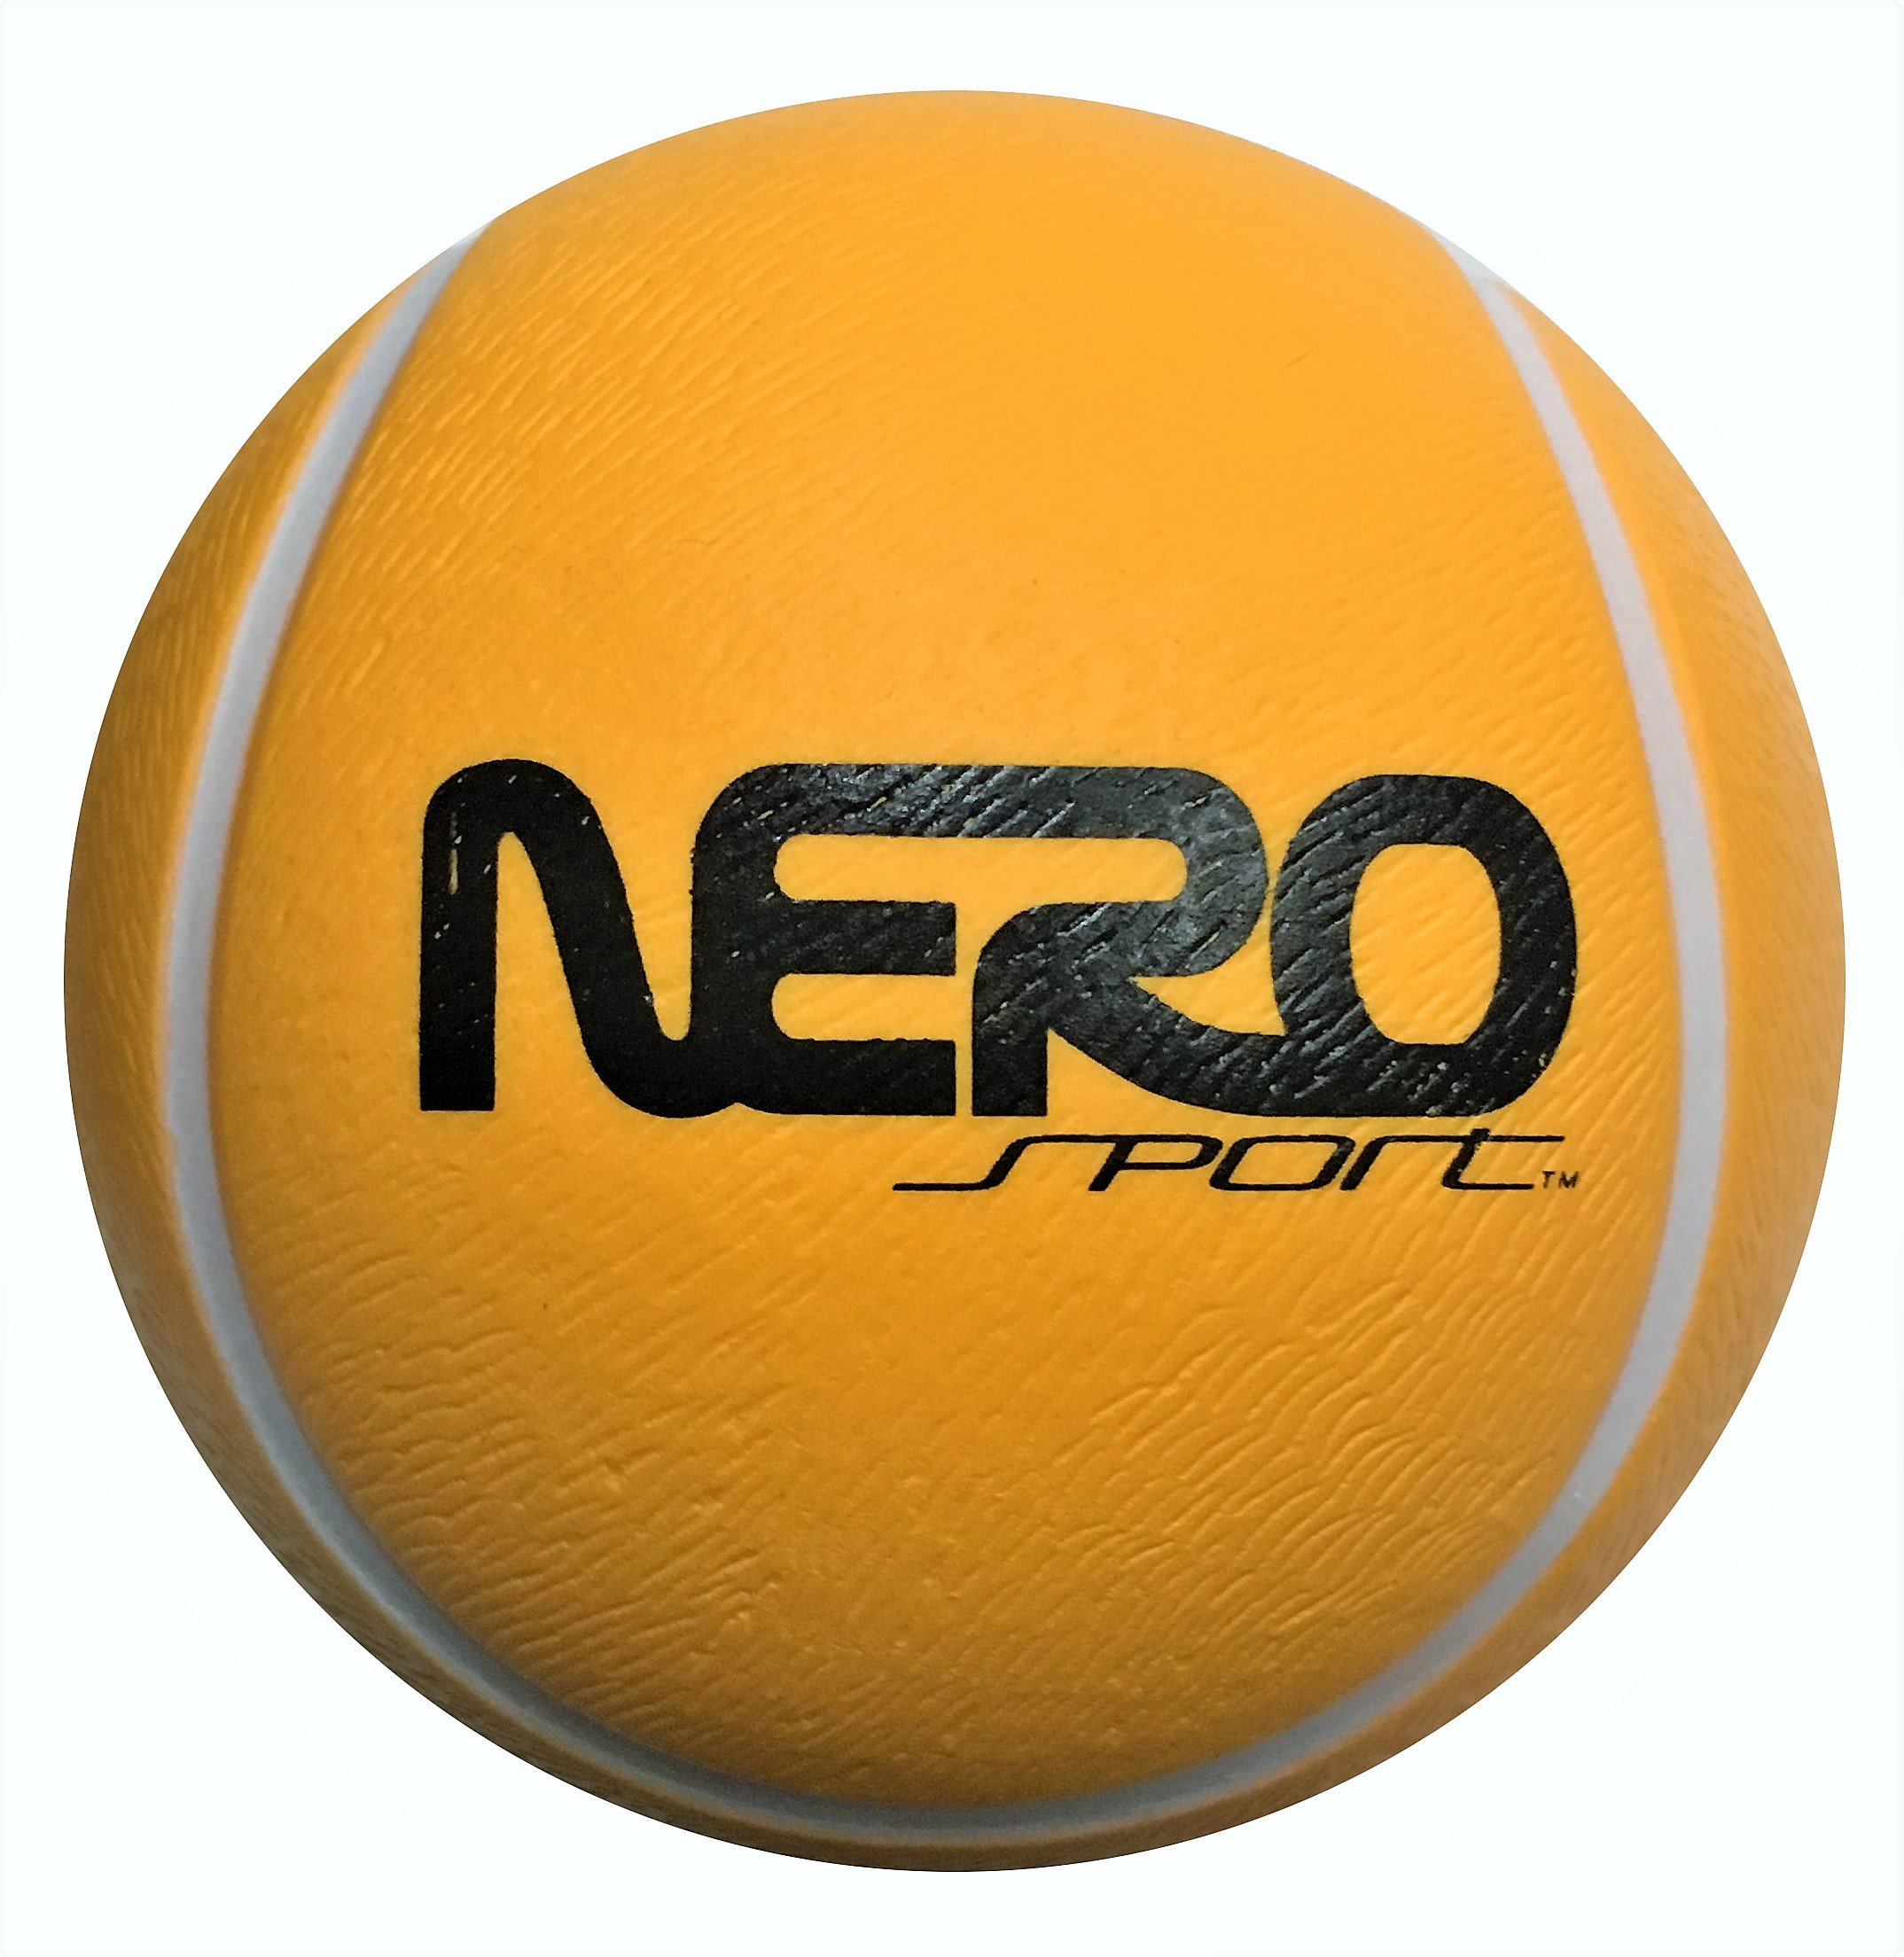 Nero NS200 High Bounce Rubber Toy Ball 3.5 inch Different Styles Tennis Soccer And Basketball Great For the Streets Park Back Yard Agility Ball Bulk Price Birthdays (orange tennis)